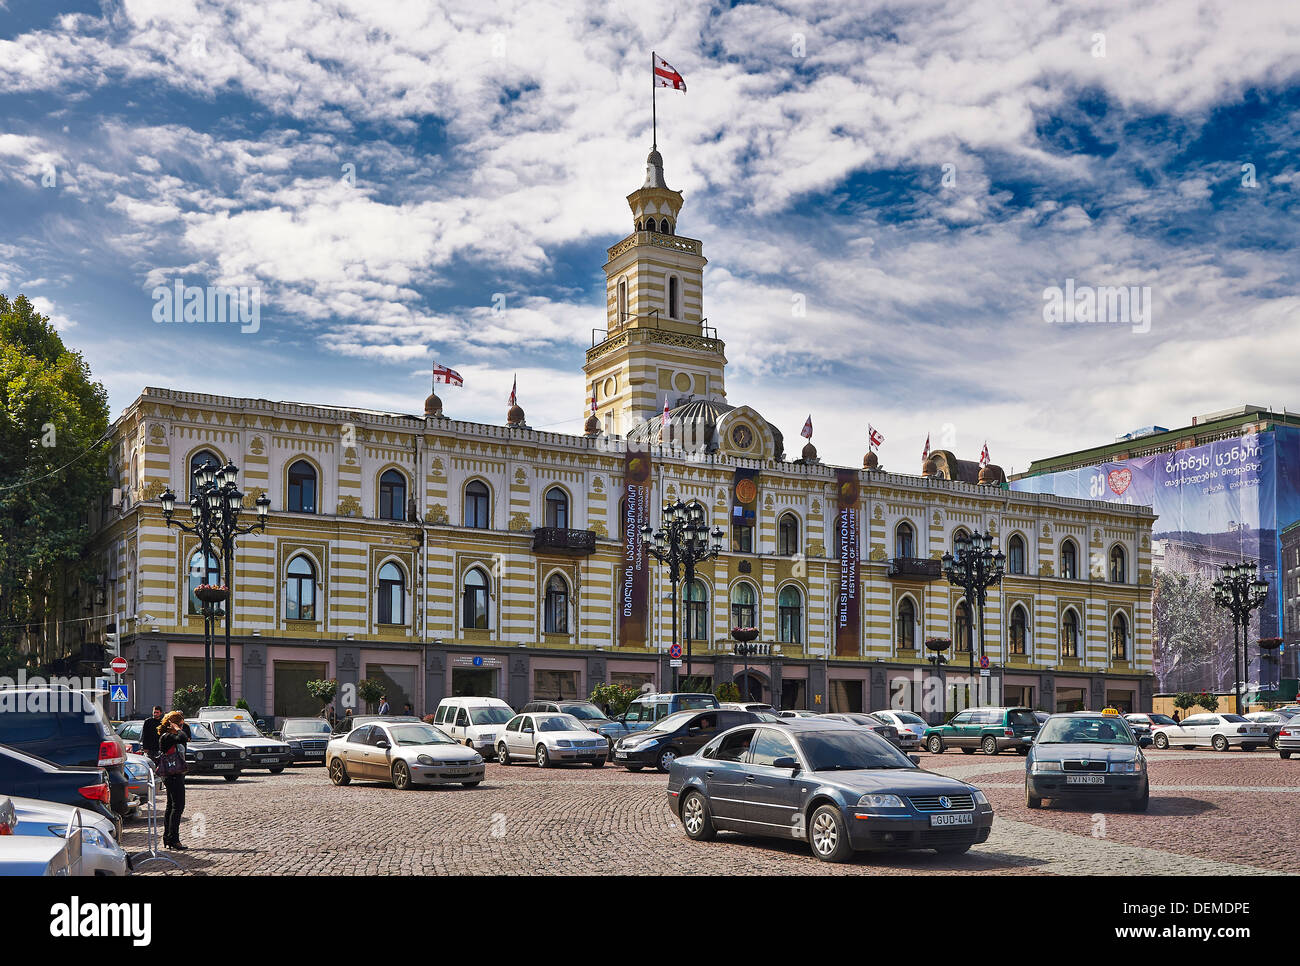 townhall or municipality of Tbilisi, Georgia Stock Photo